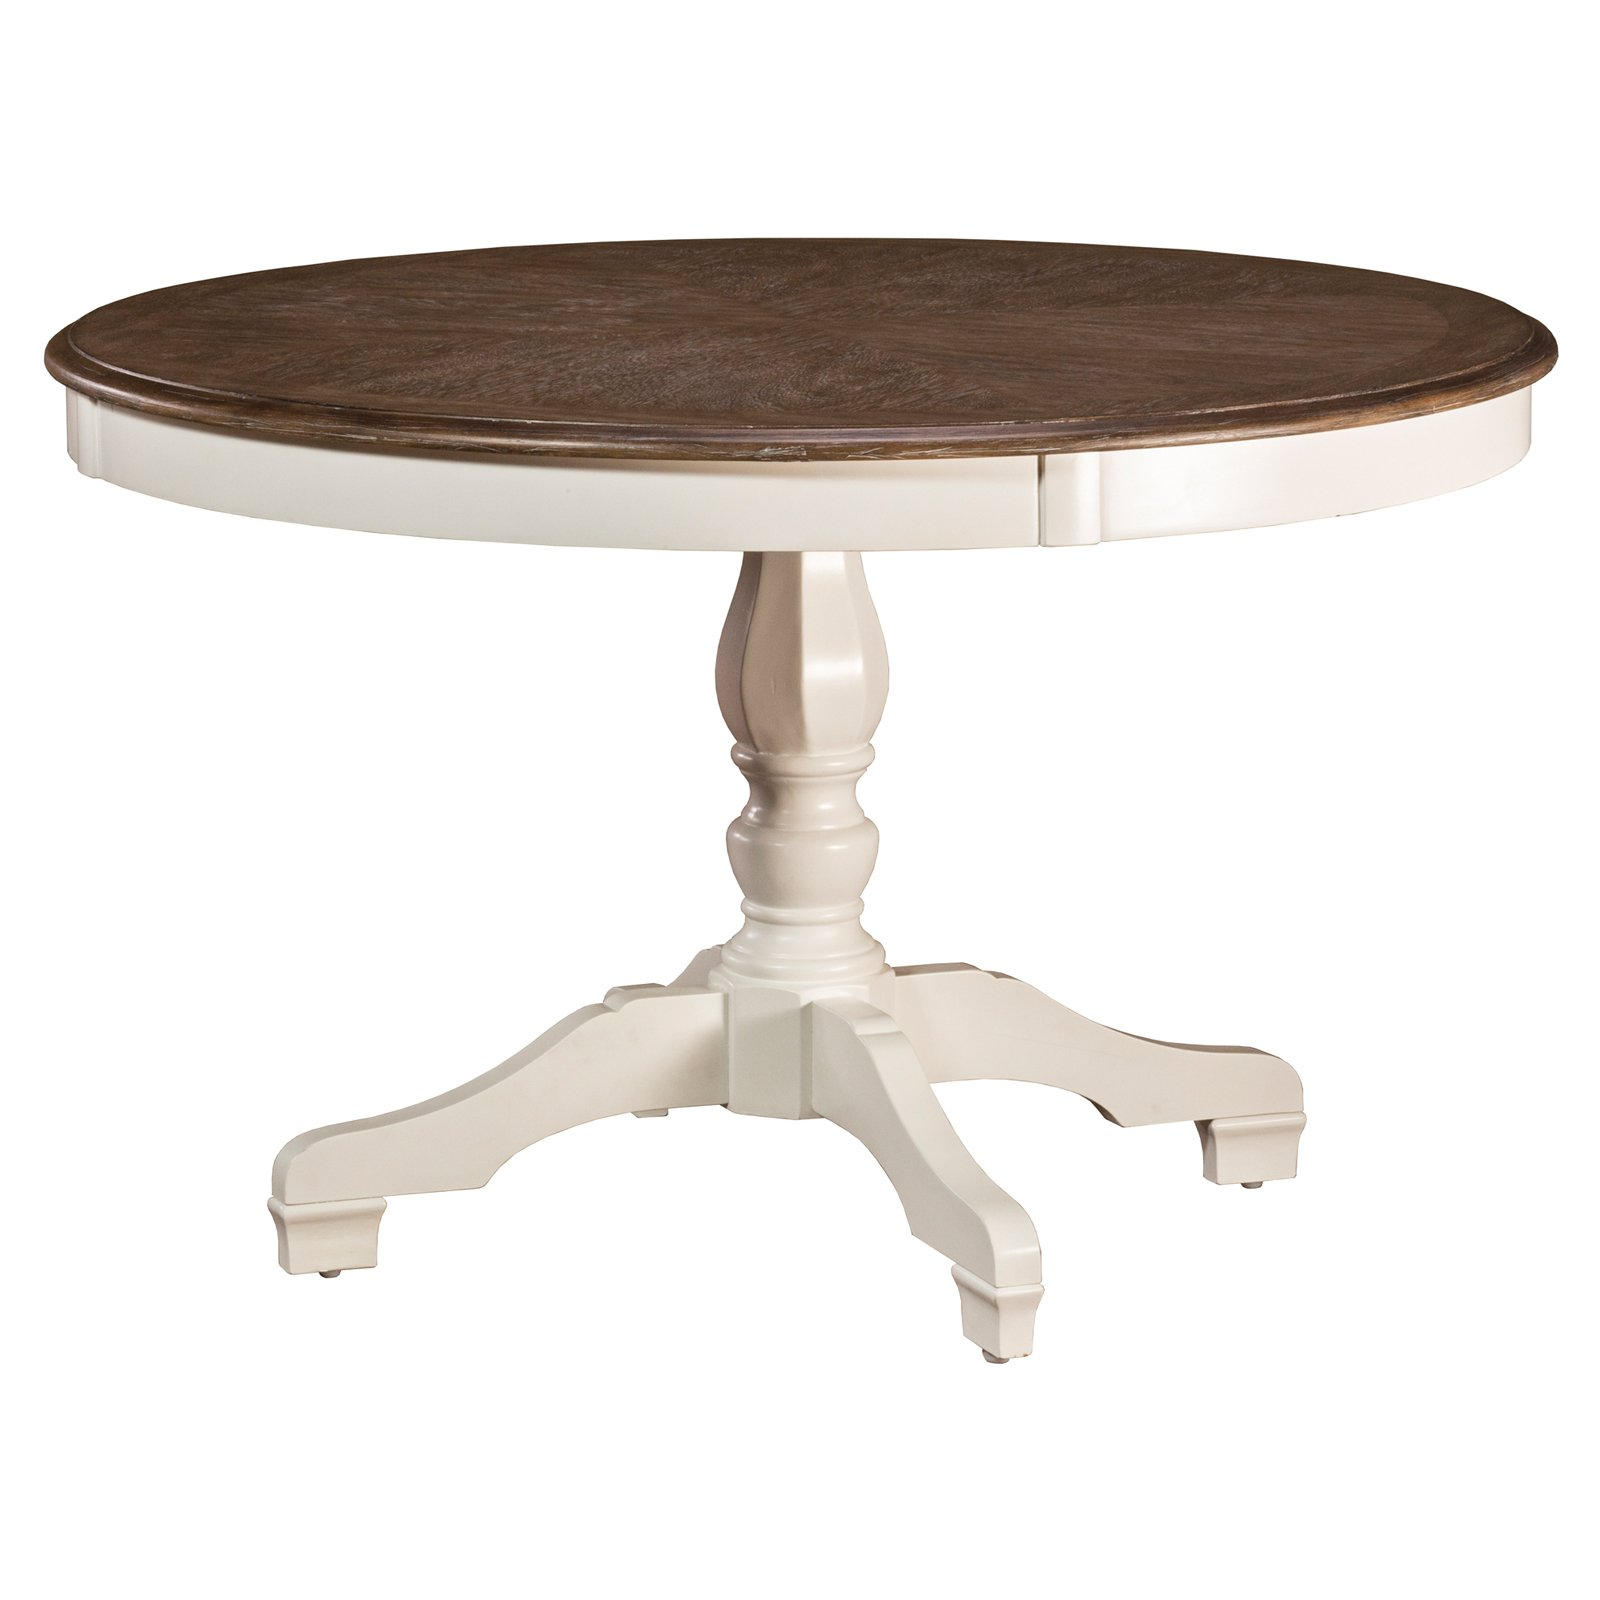 Hillsdale Furniture Bayberry   Embassy Round Dining Table, White by Hillsdale Furniture